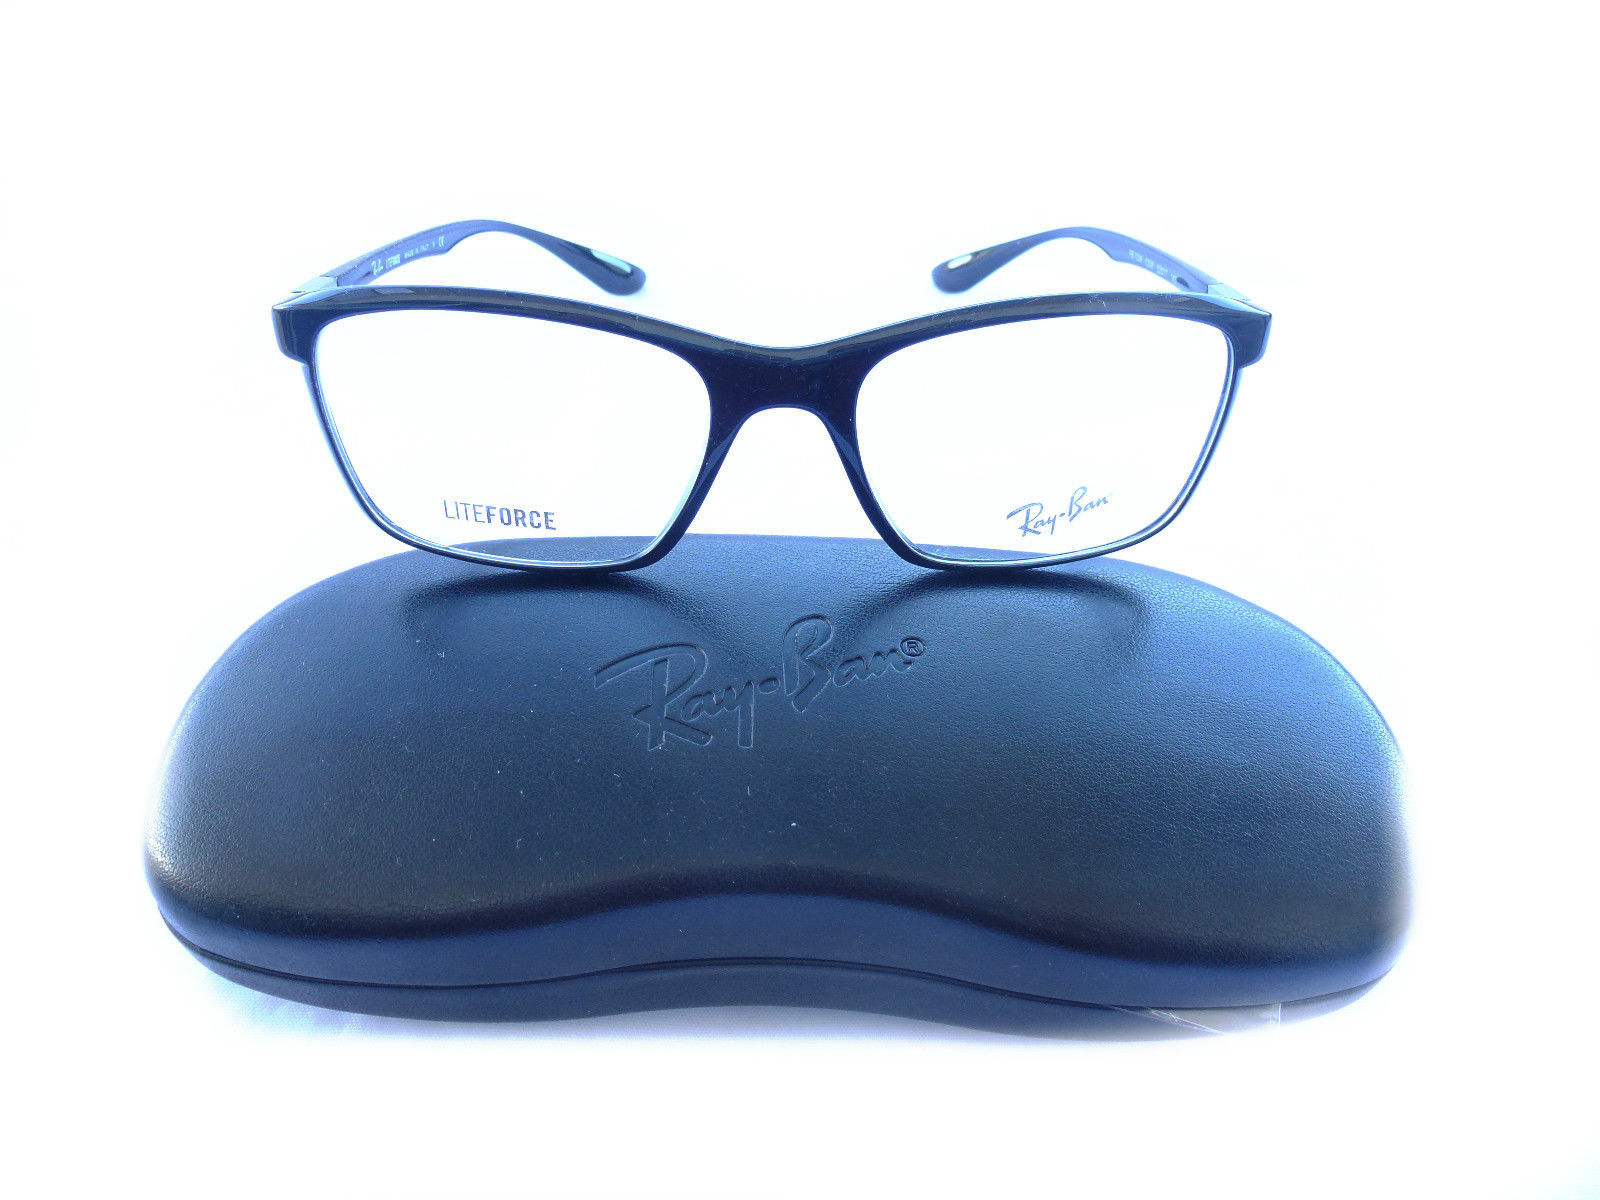 Ray Ban Lightforce Blitz Www Panaust Com Au